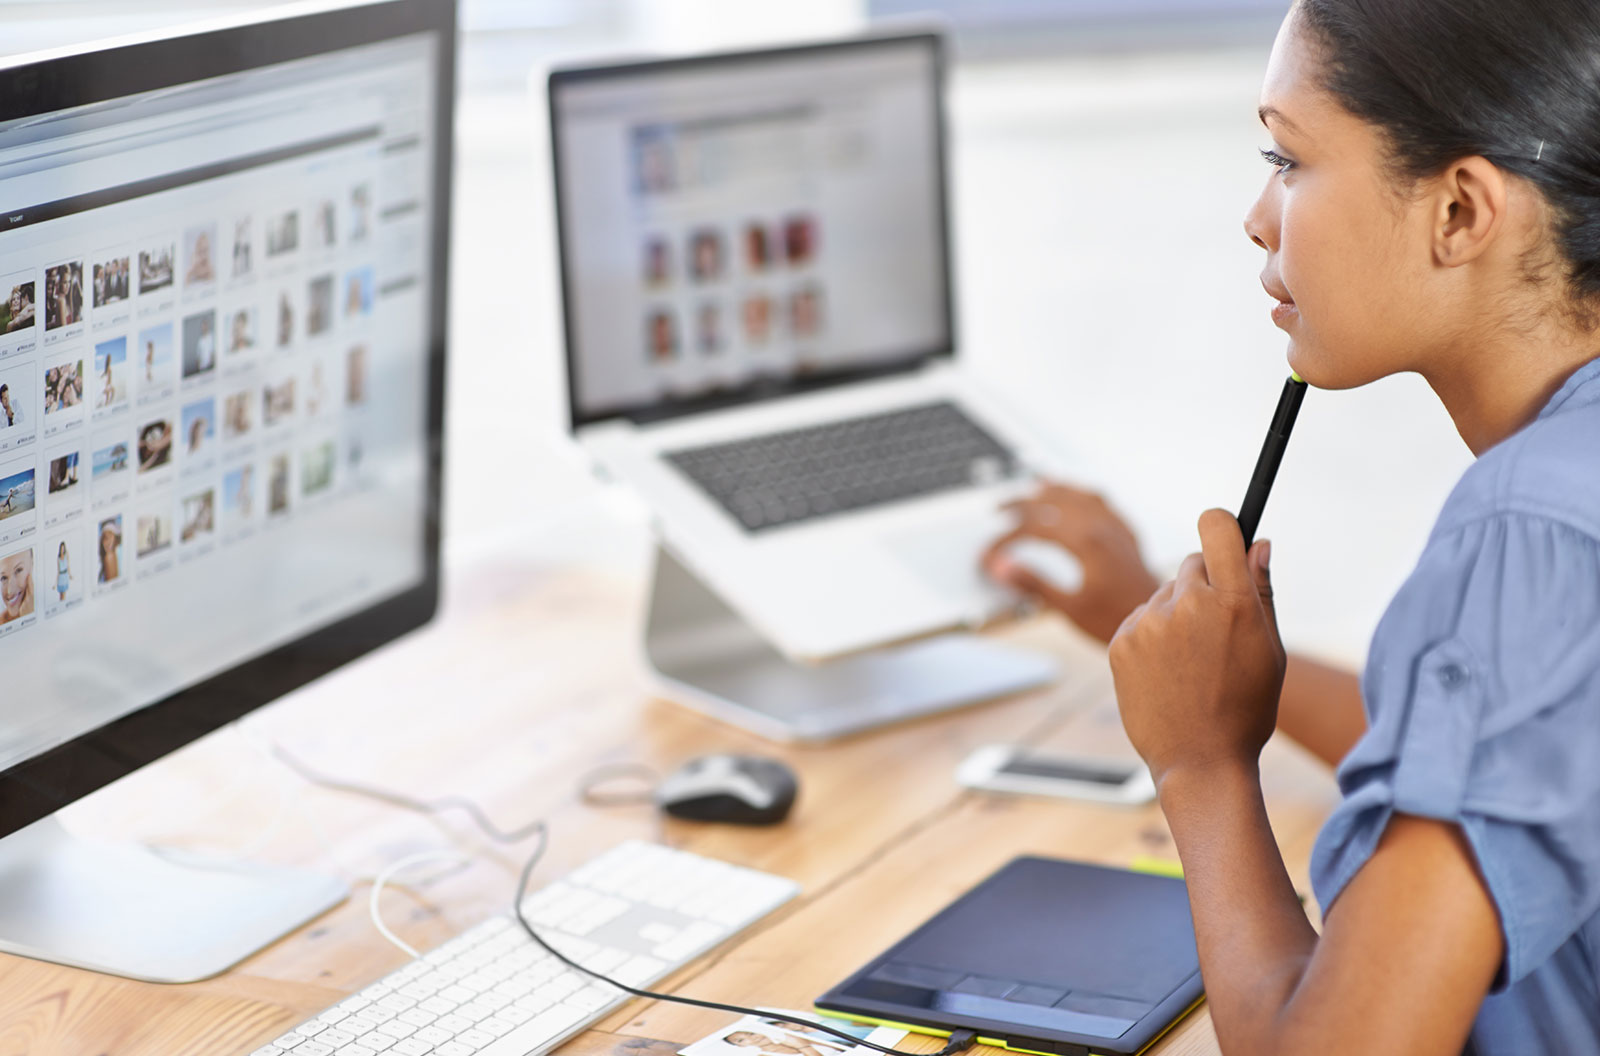 Young female editor in front of her computer pondering what stock images to use in her project